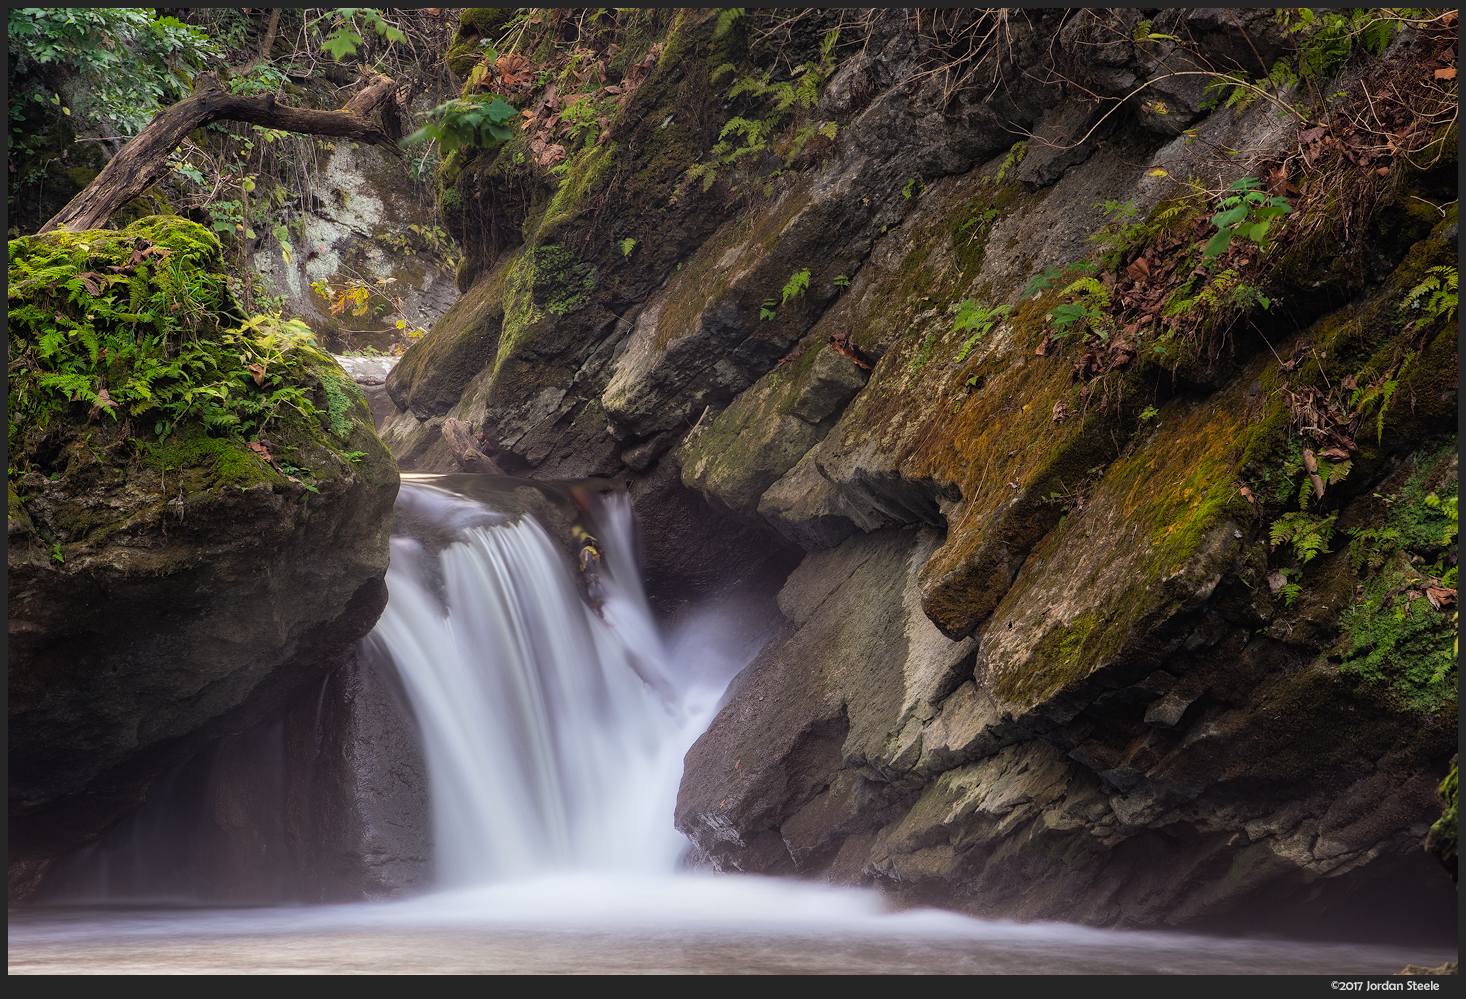 Waterfall on Massies Creek - Sony A7 II with Canon EF 70-200mm f/4L @